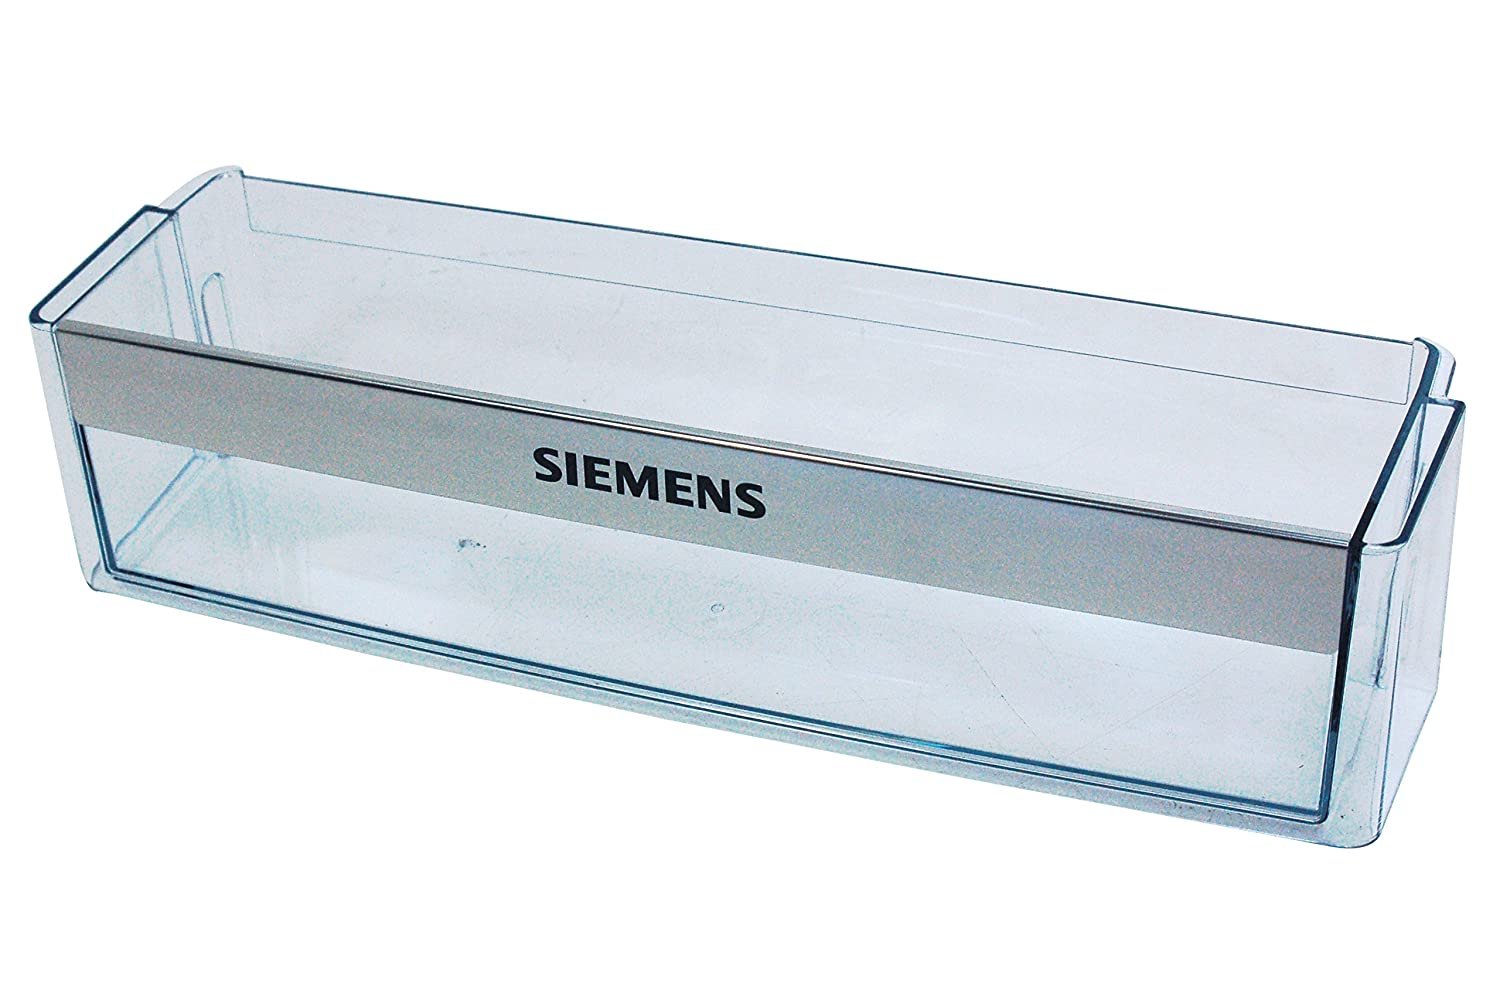 Siemens Siemens Refrigeration Bottle Rack Tray. Genuine part number 705186